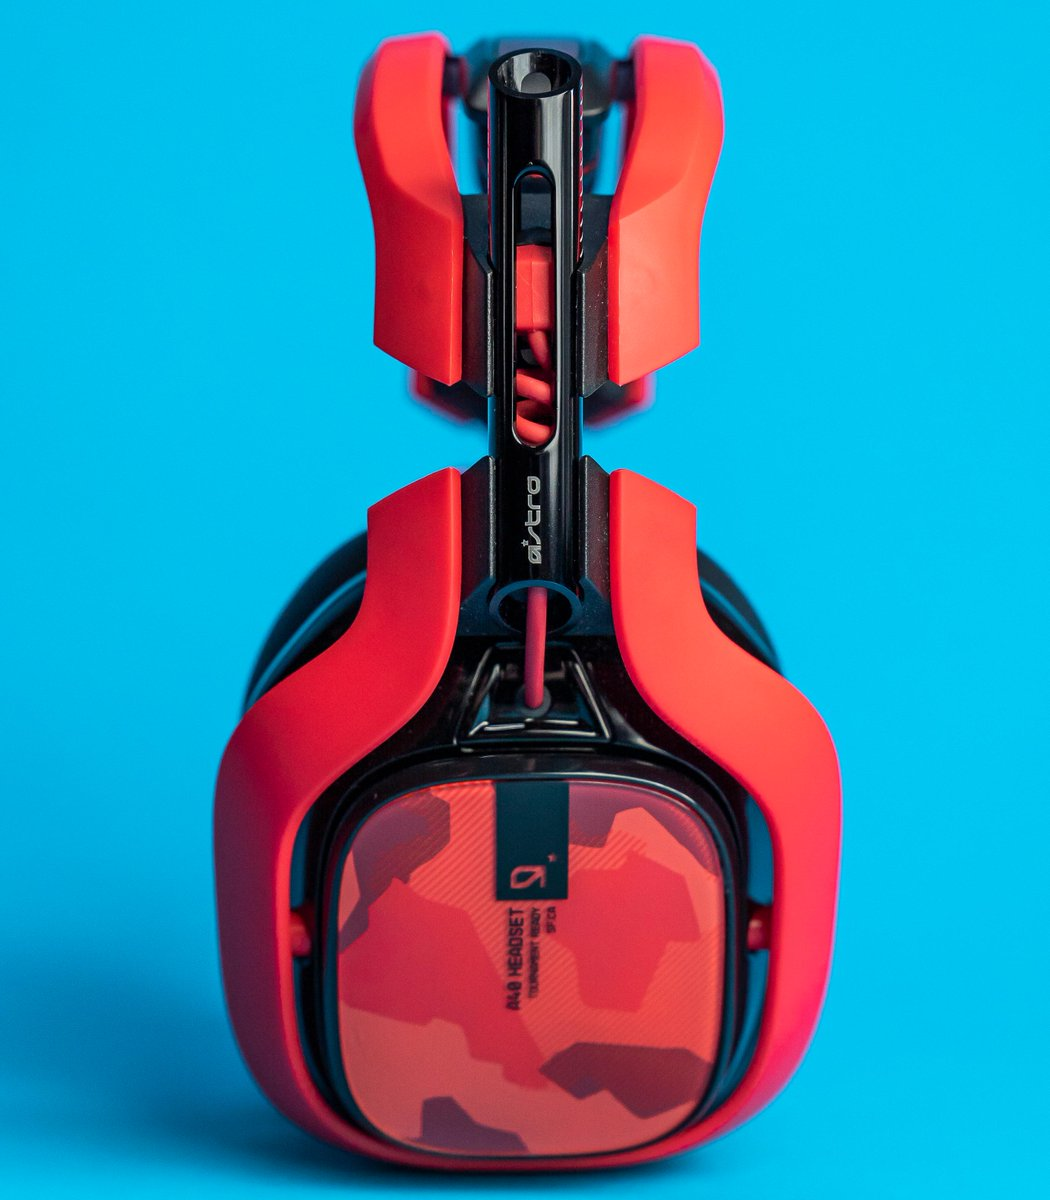 Headsets are red, Headsets are blue,  is made just for you.